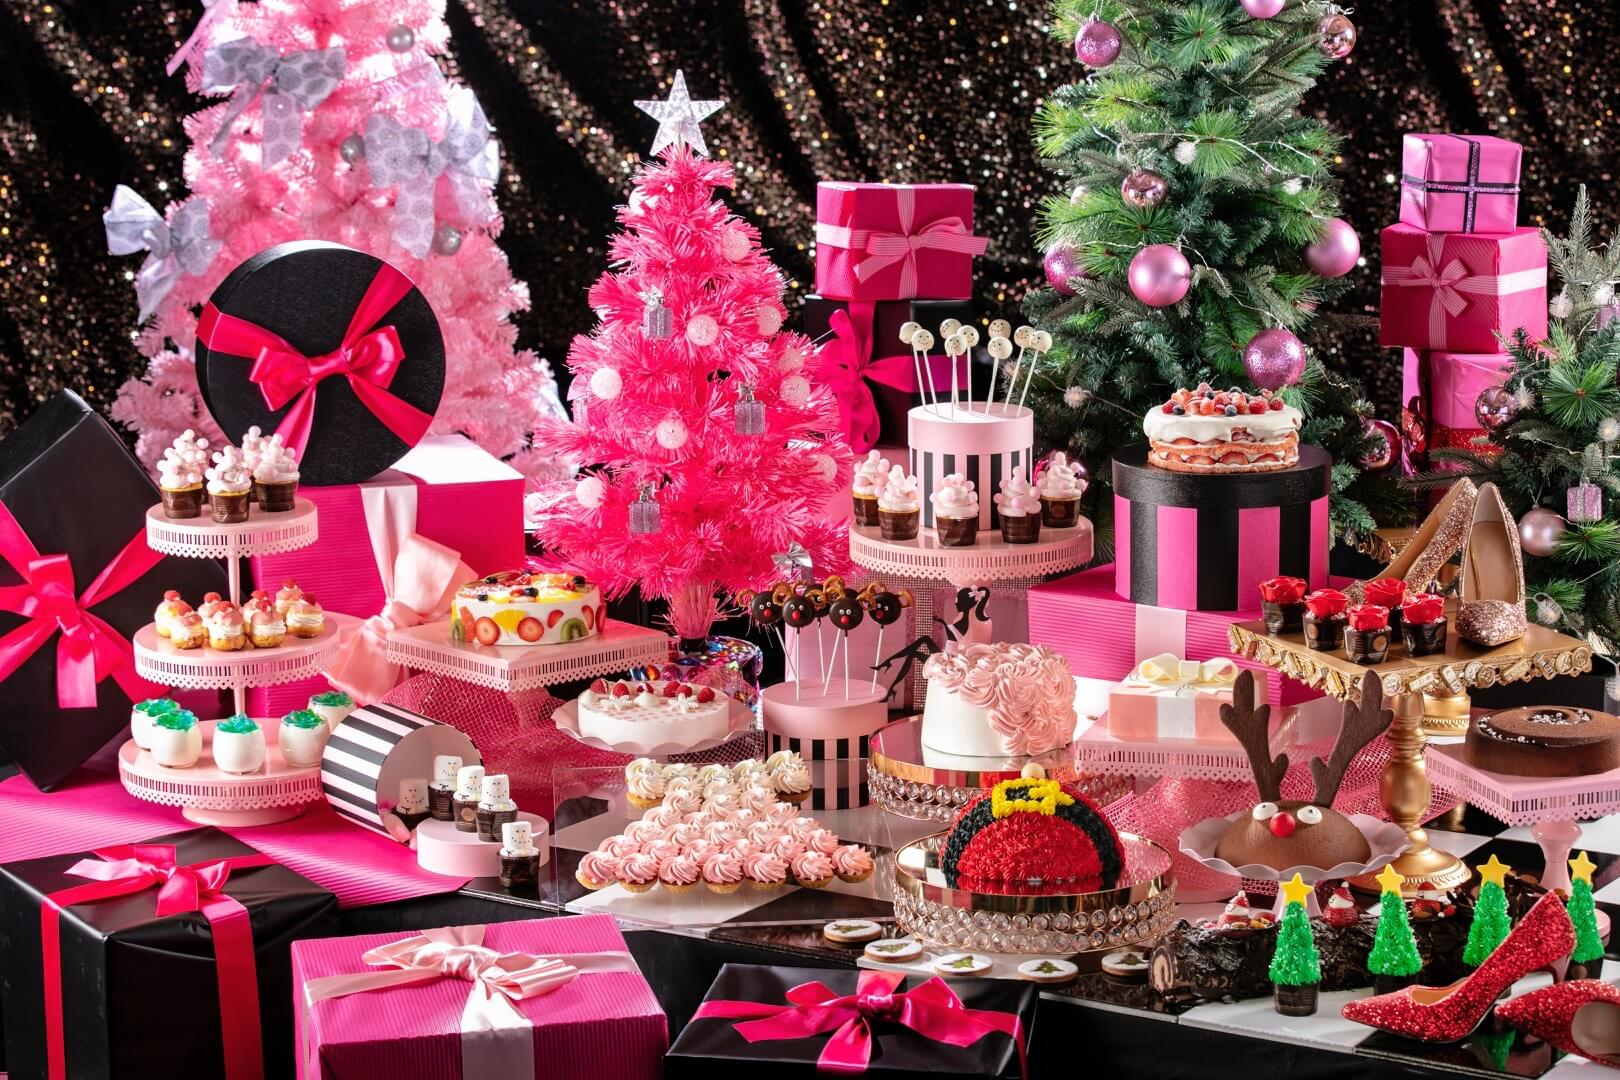 The Buffet Is Overlooked By A Bright Pink Christmas Tree Under Which Are All Presents Could Hope For Including Dress Jewel Box